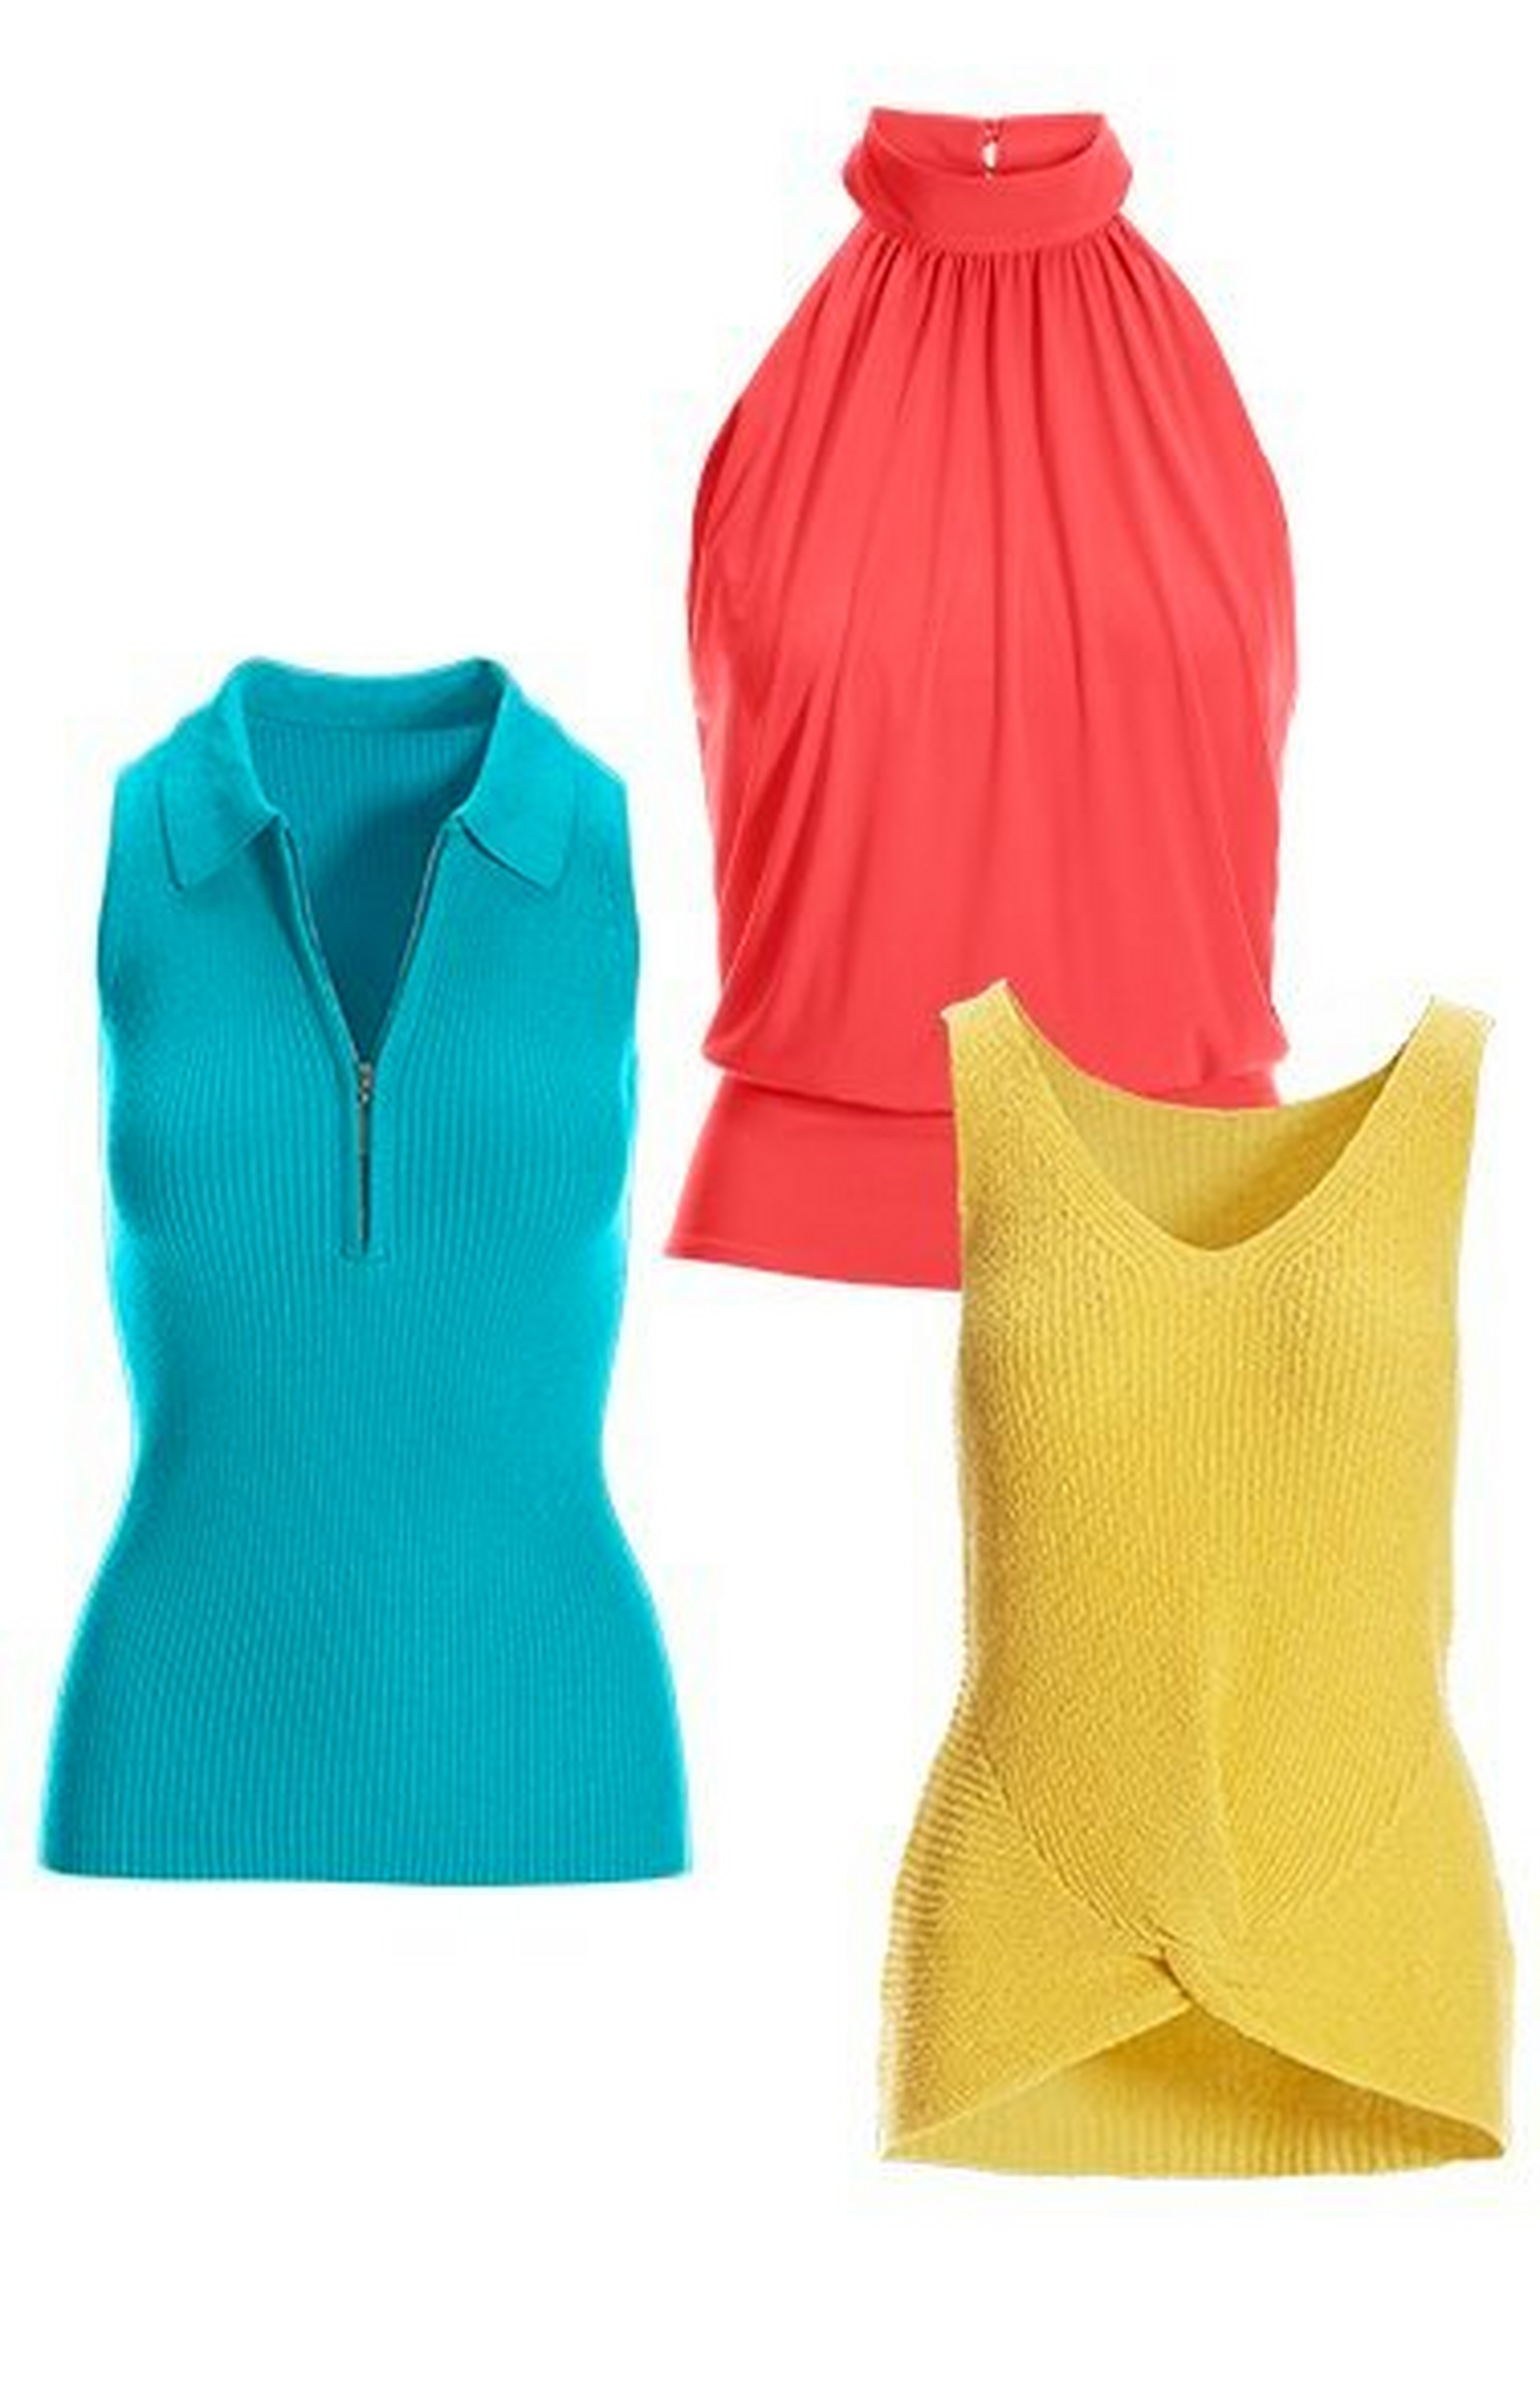 blue sleeveless zippered collared sweater, coral mock-neck blouson sleeveless top, and yellow sleeveless knot-front sweater.